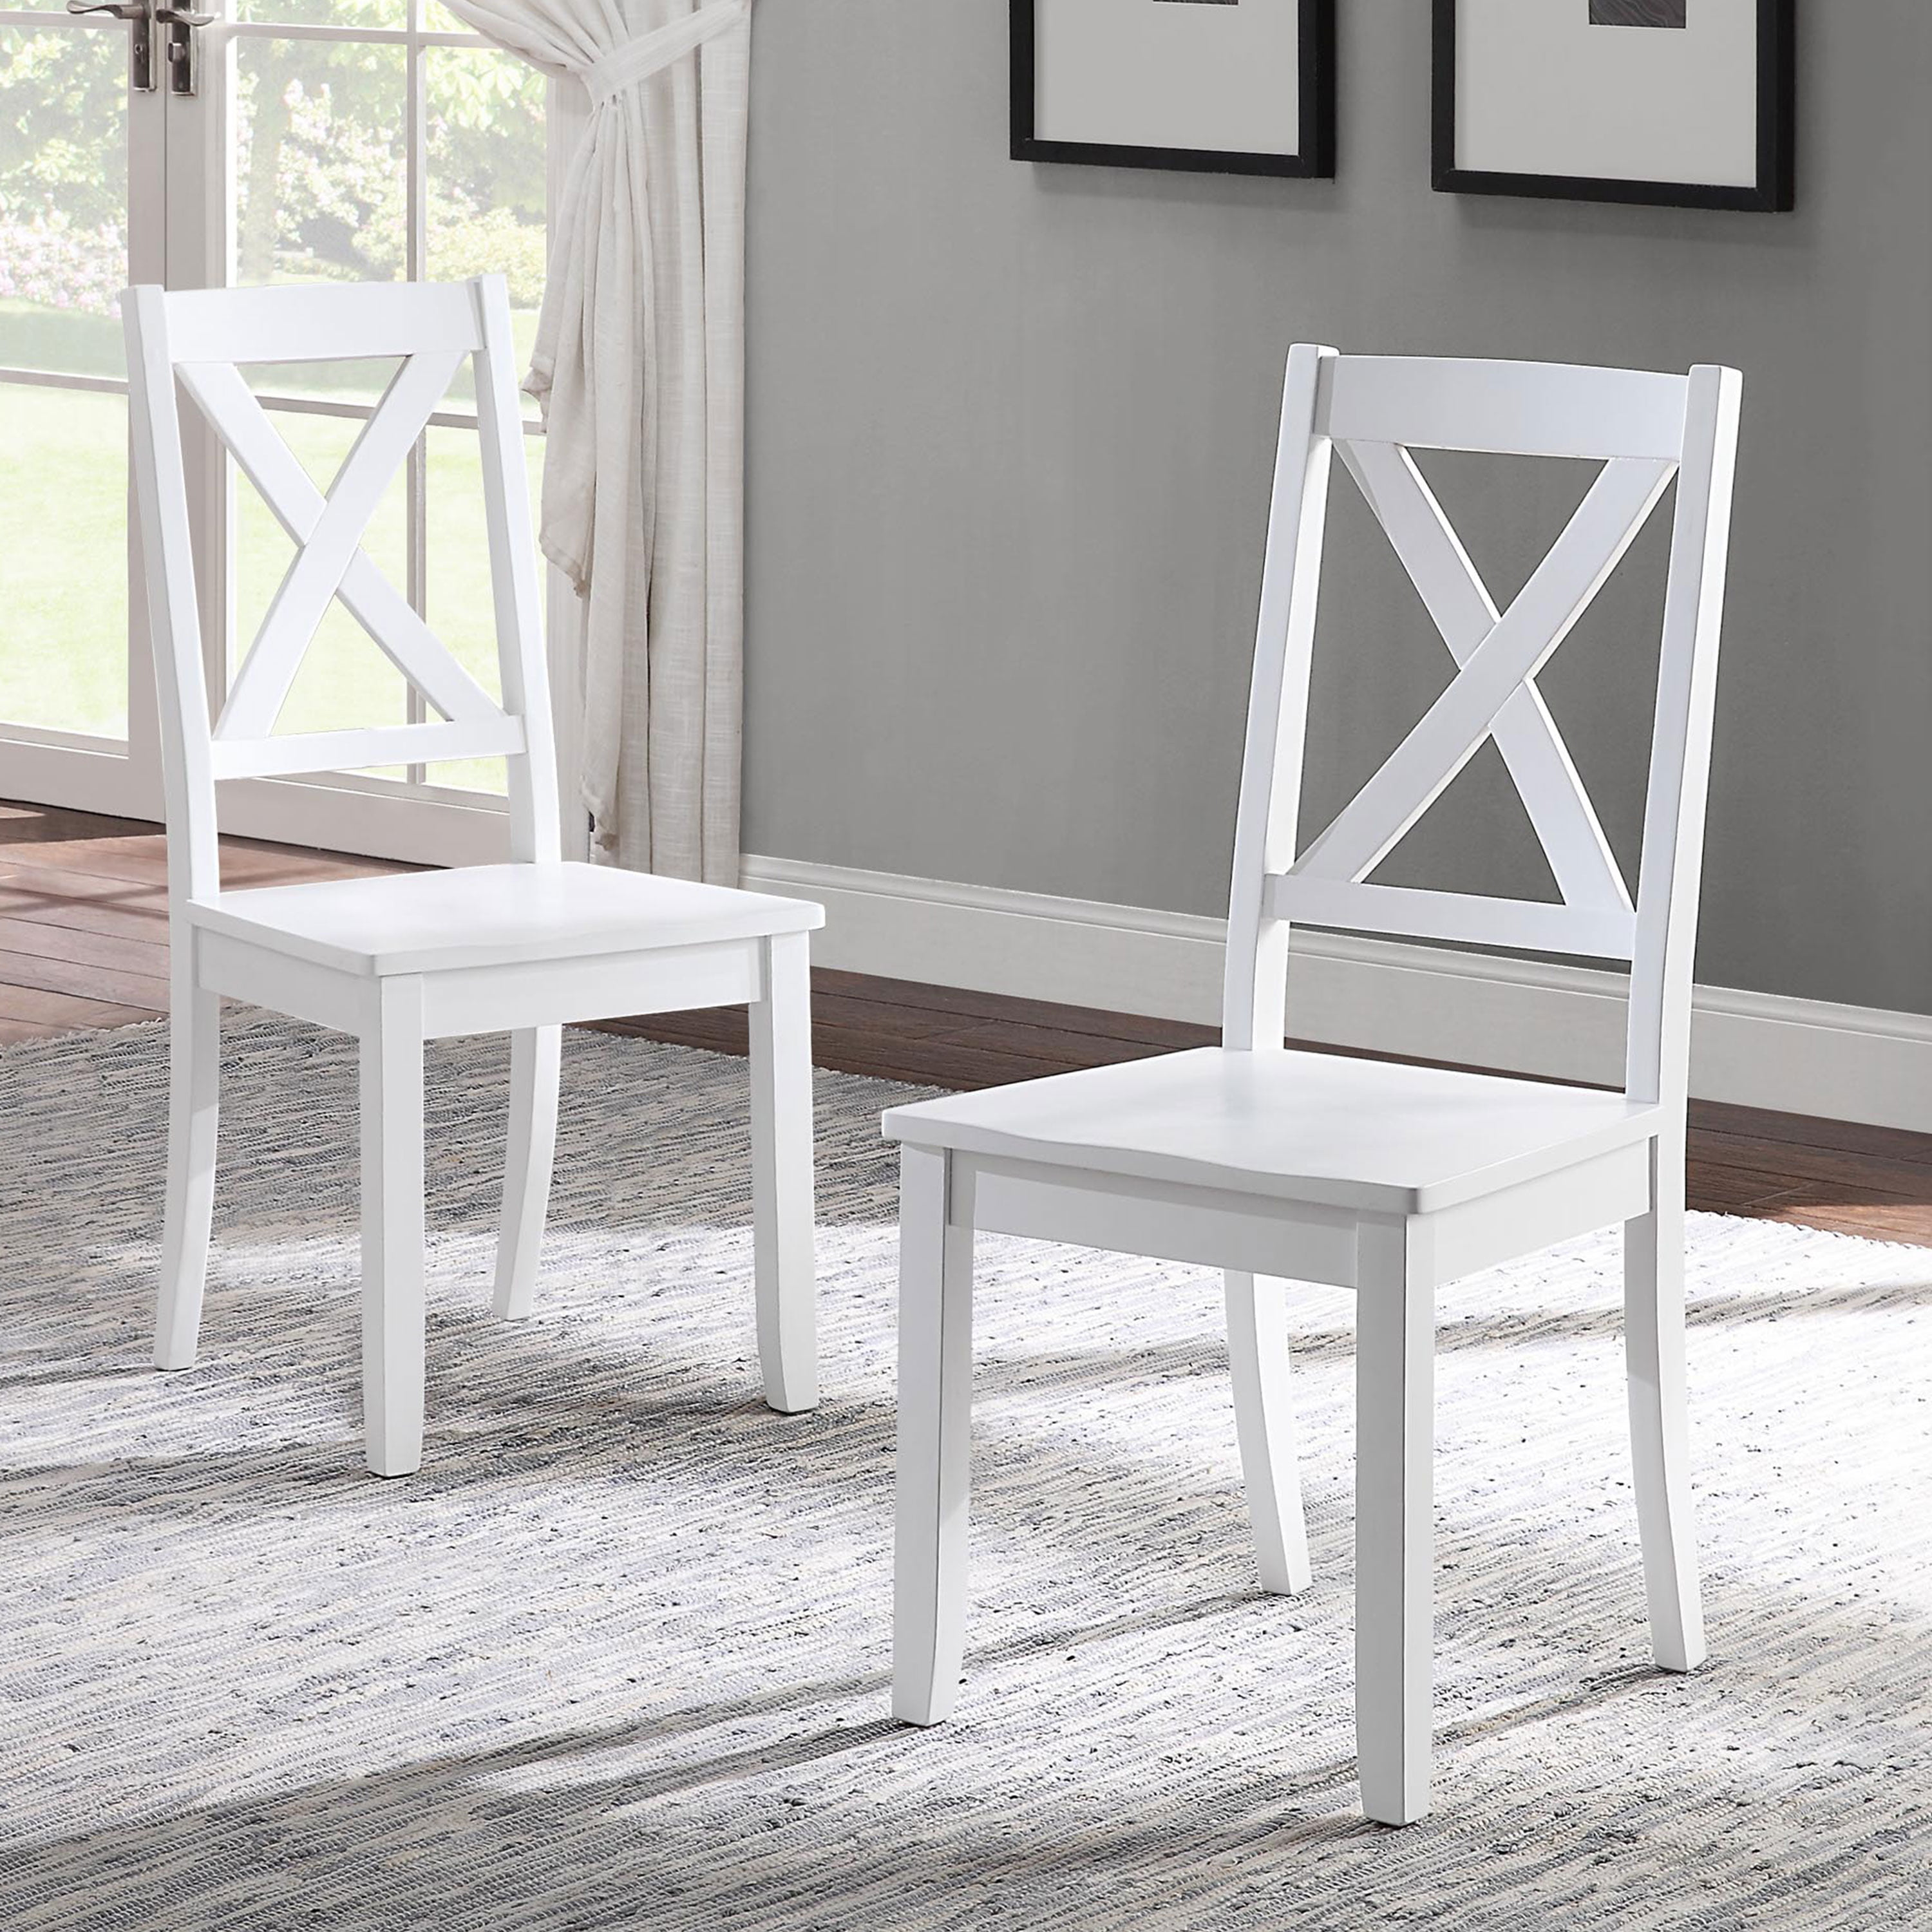 Better Homes & Gardens Maddox Crossing Dining Chairs, Set